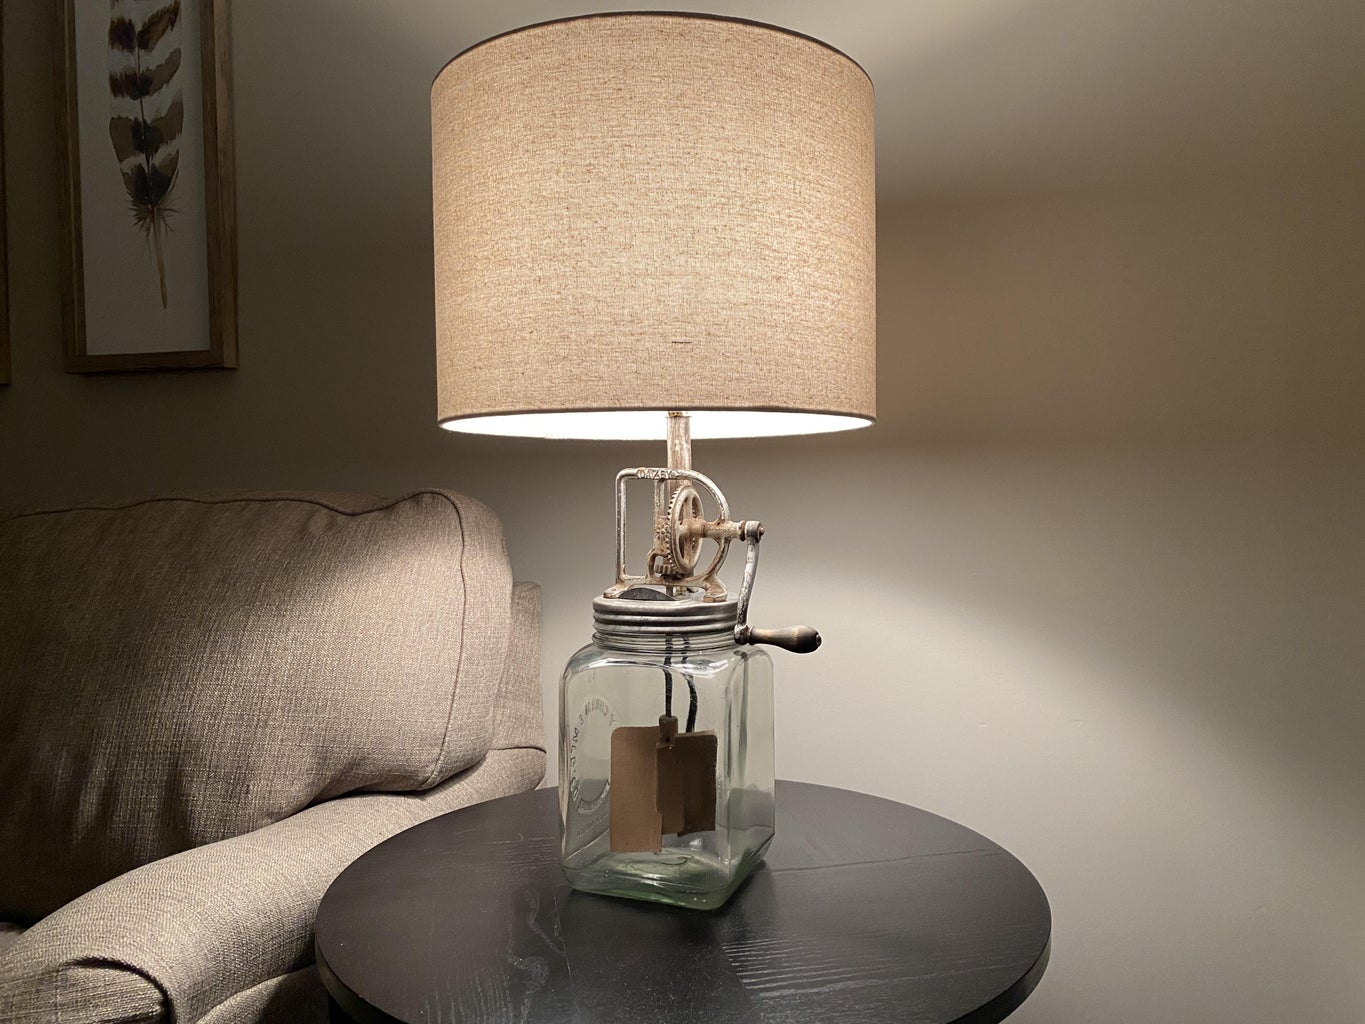 Churn Up the Modified Lamp